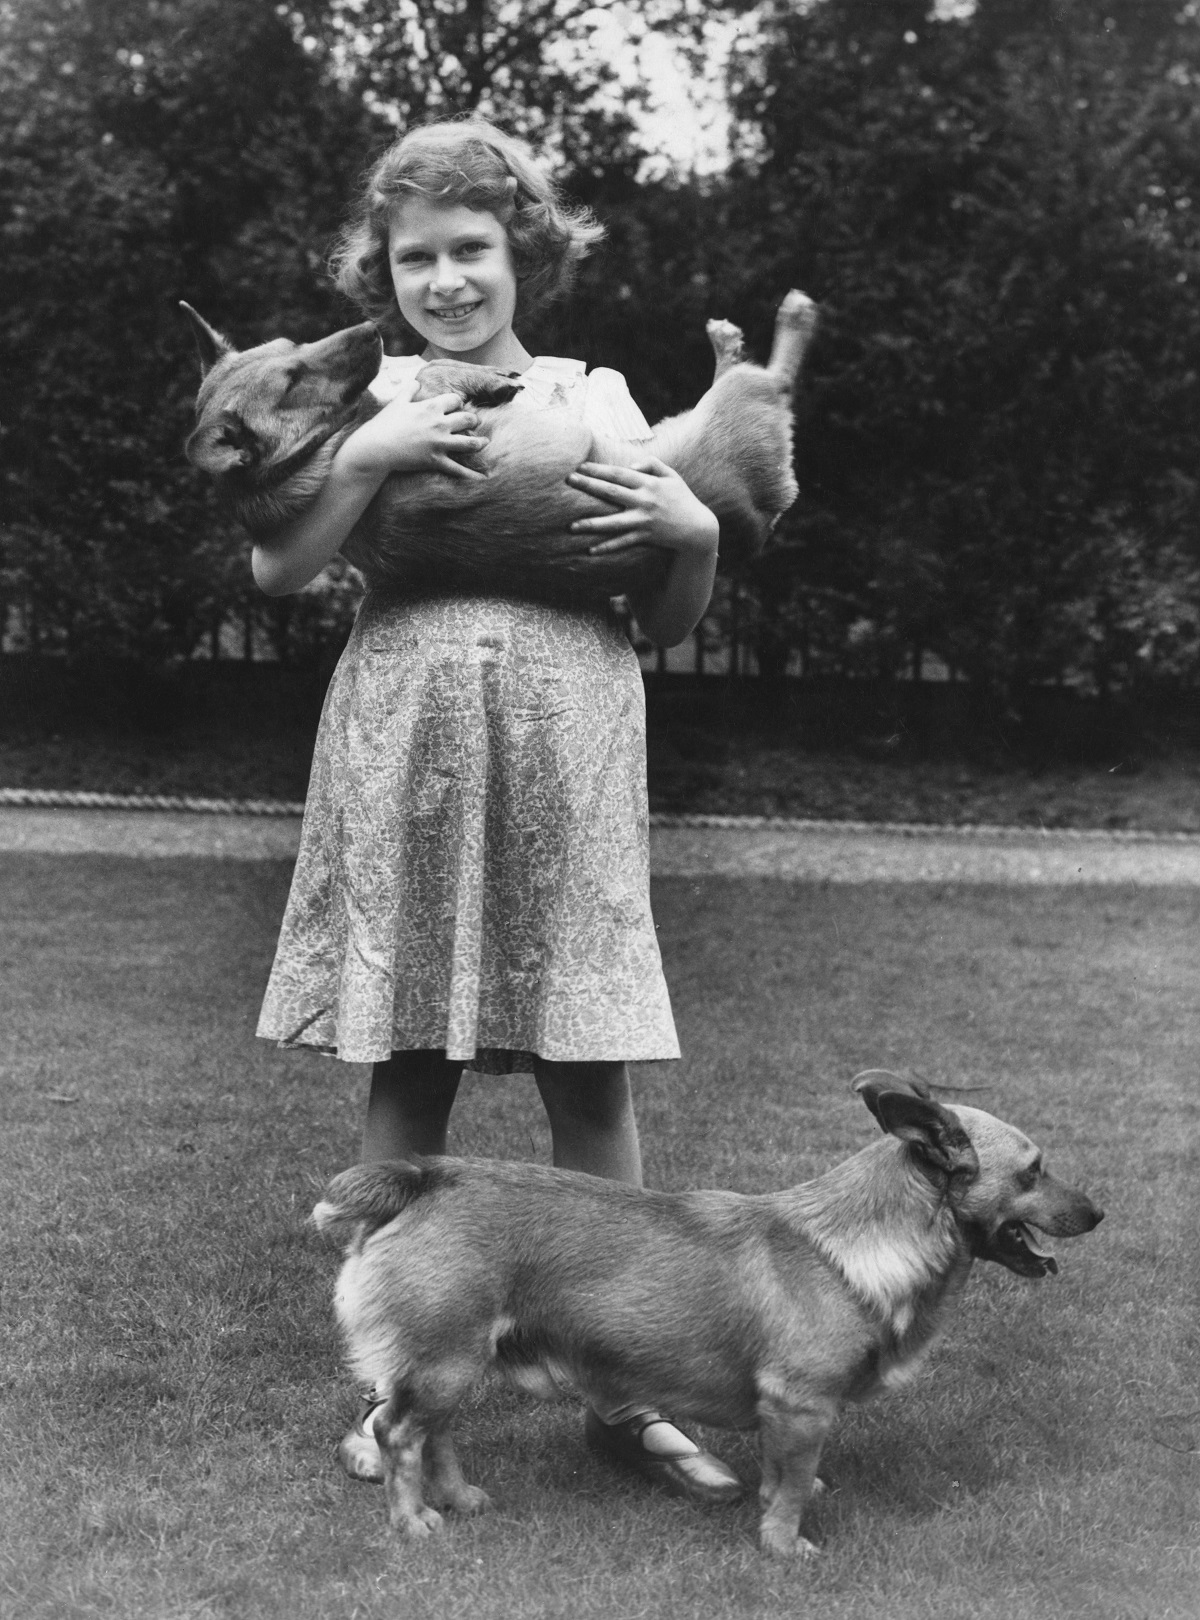 Princess Elizabeth (now Queen Elizabeth II) with two corgi dogs at her home at 145 Piccadilly, London, July 1936.